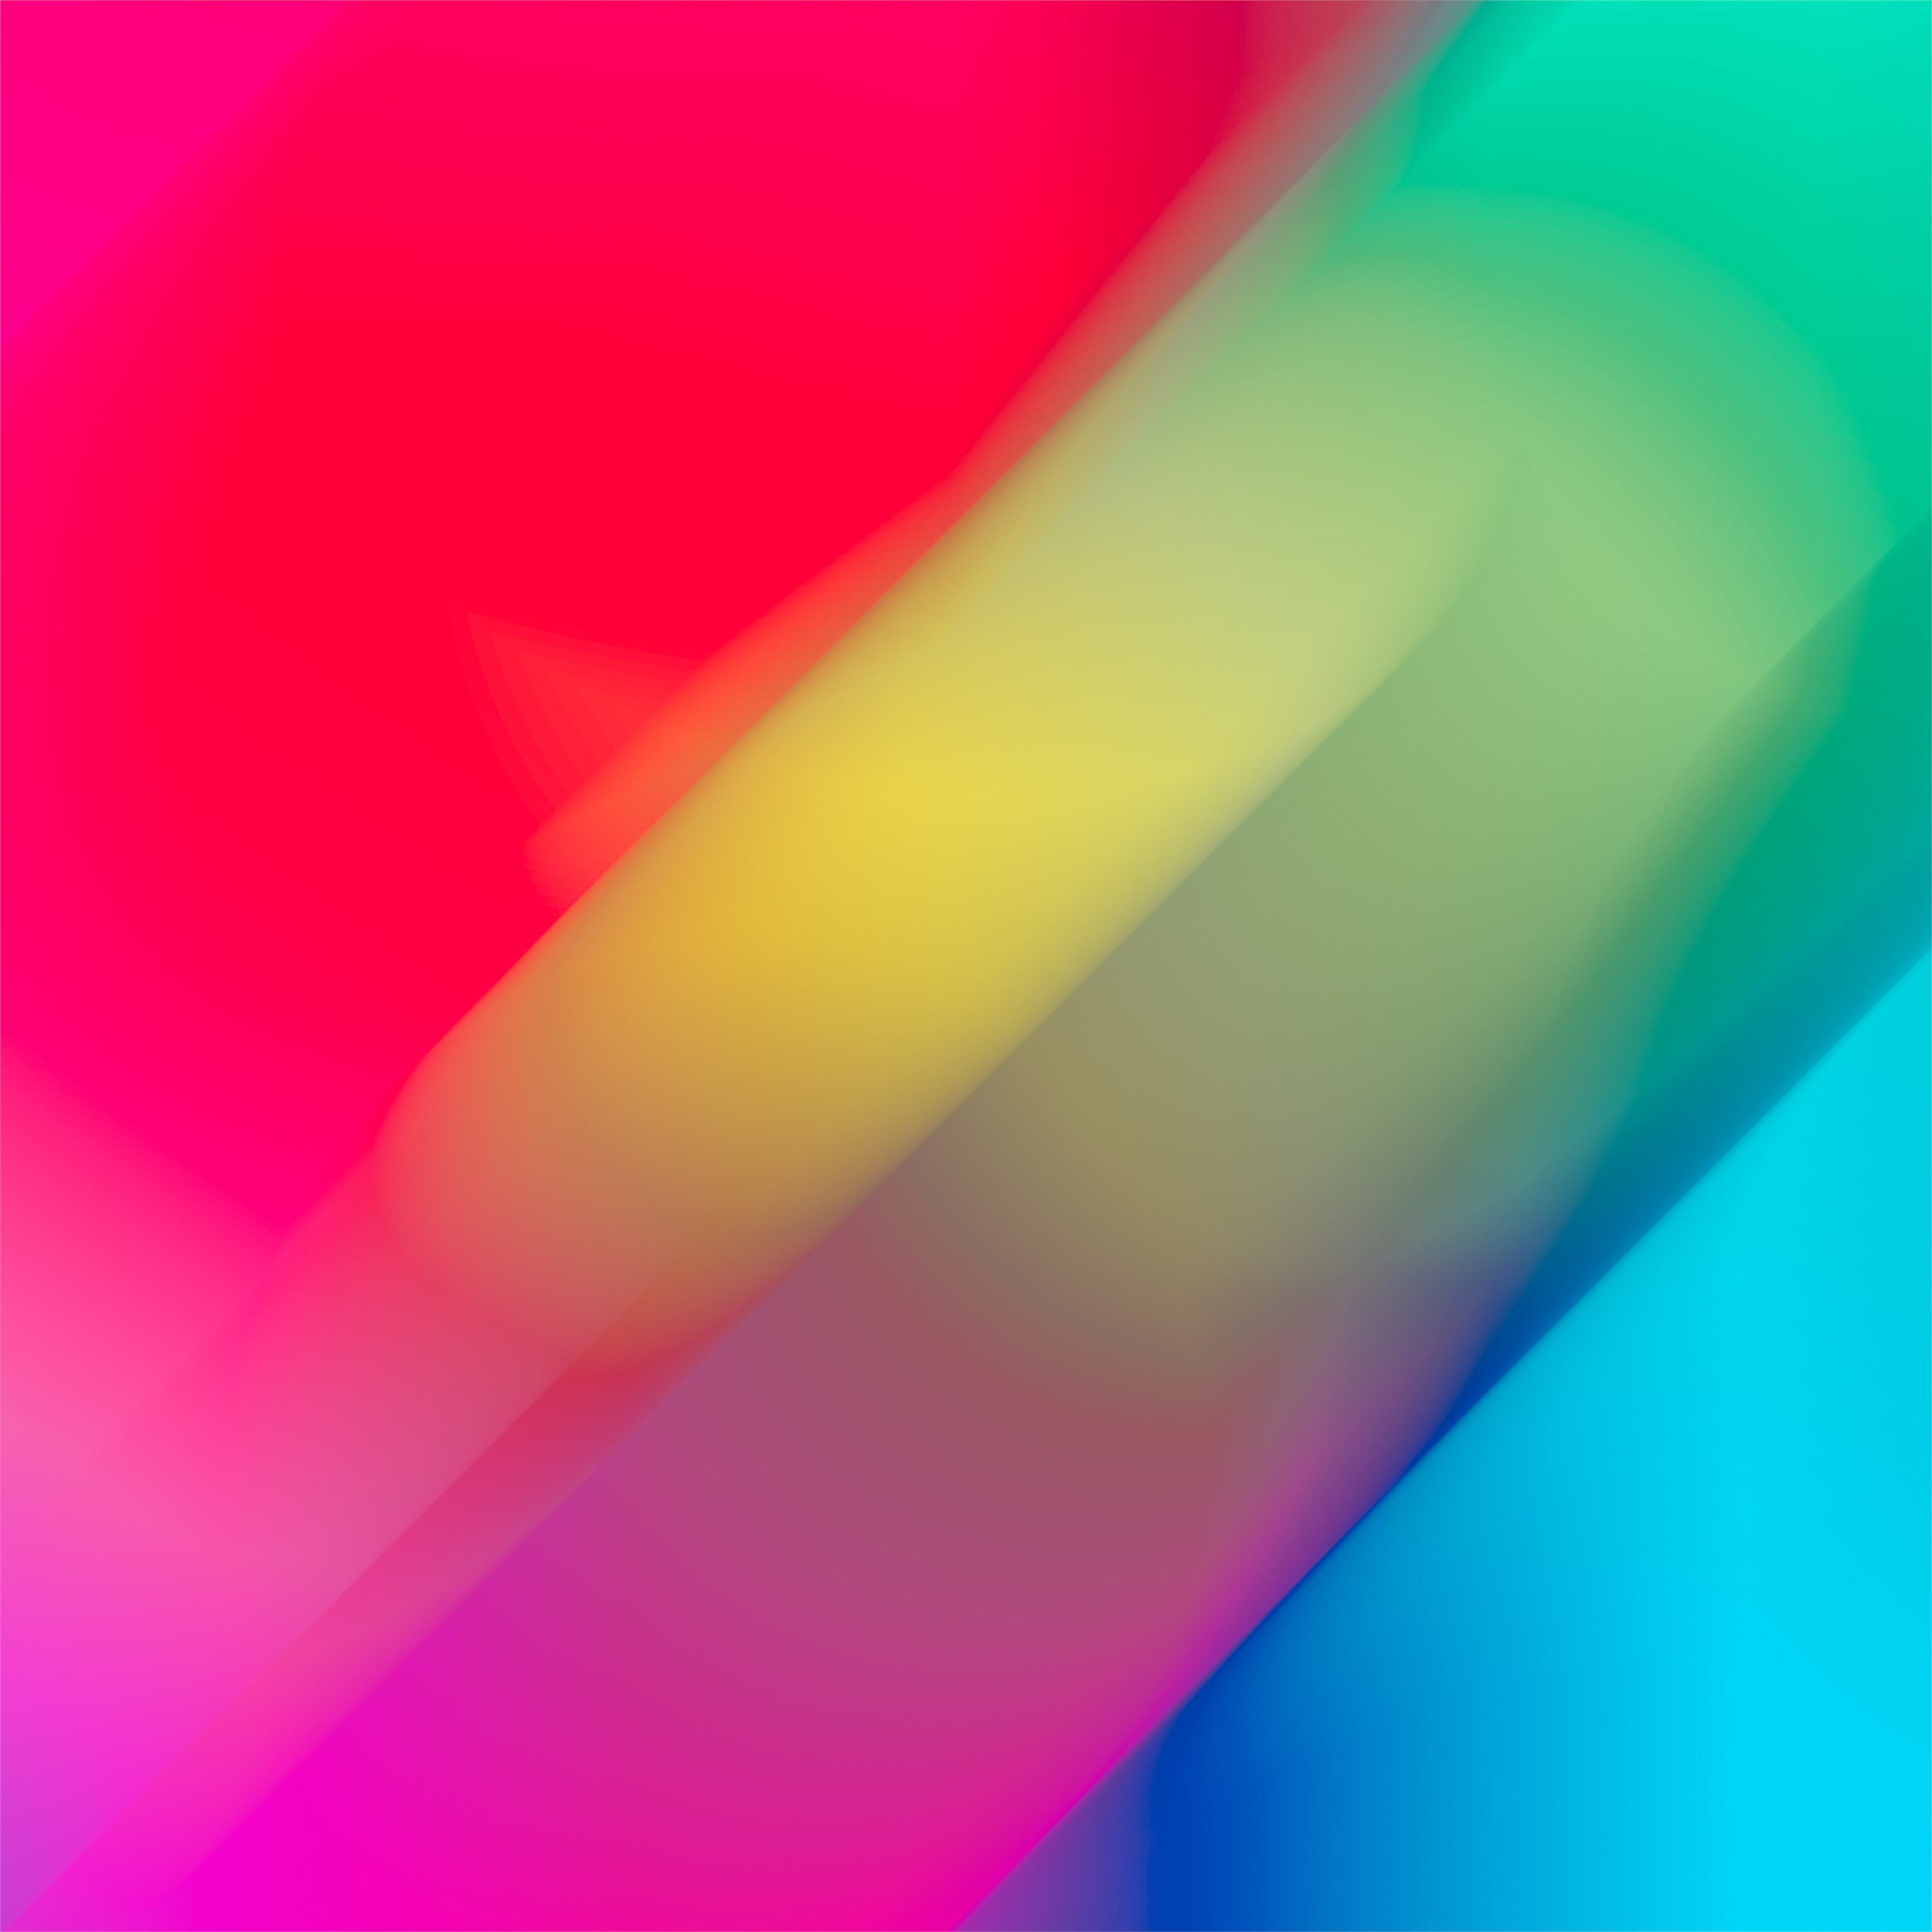 Colorful 4k Abstract IPad Pro Wallpapers Free Download